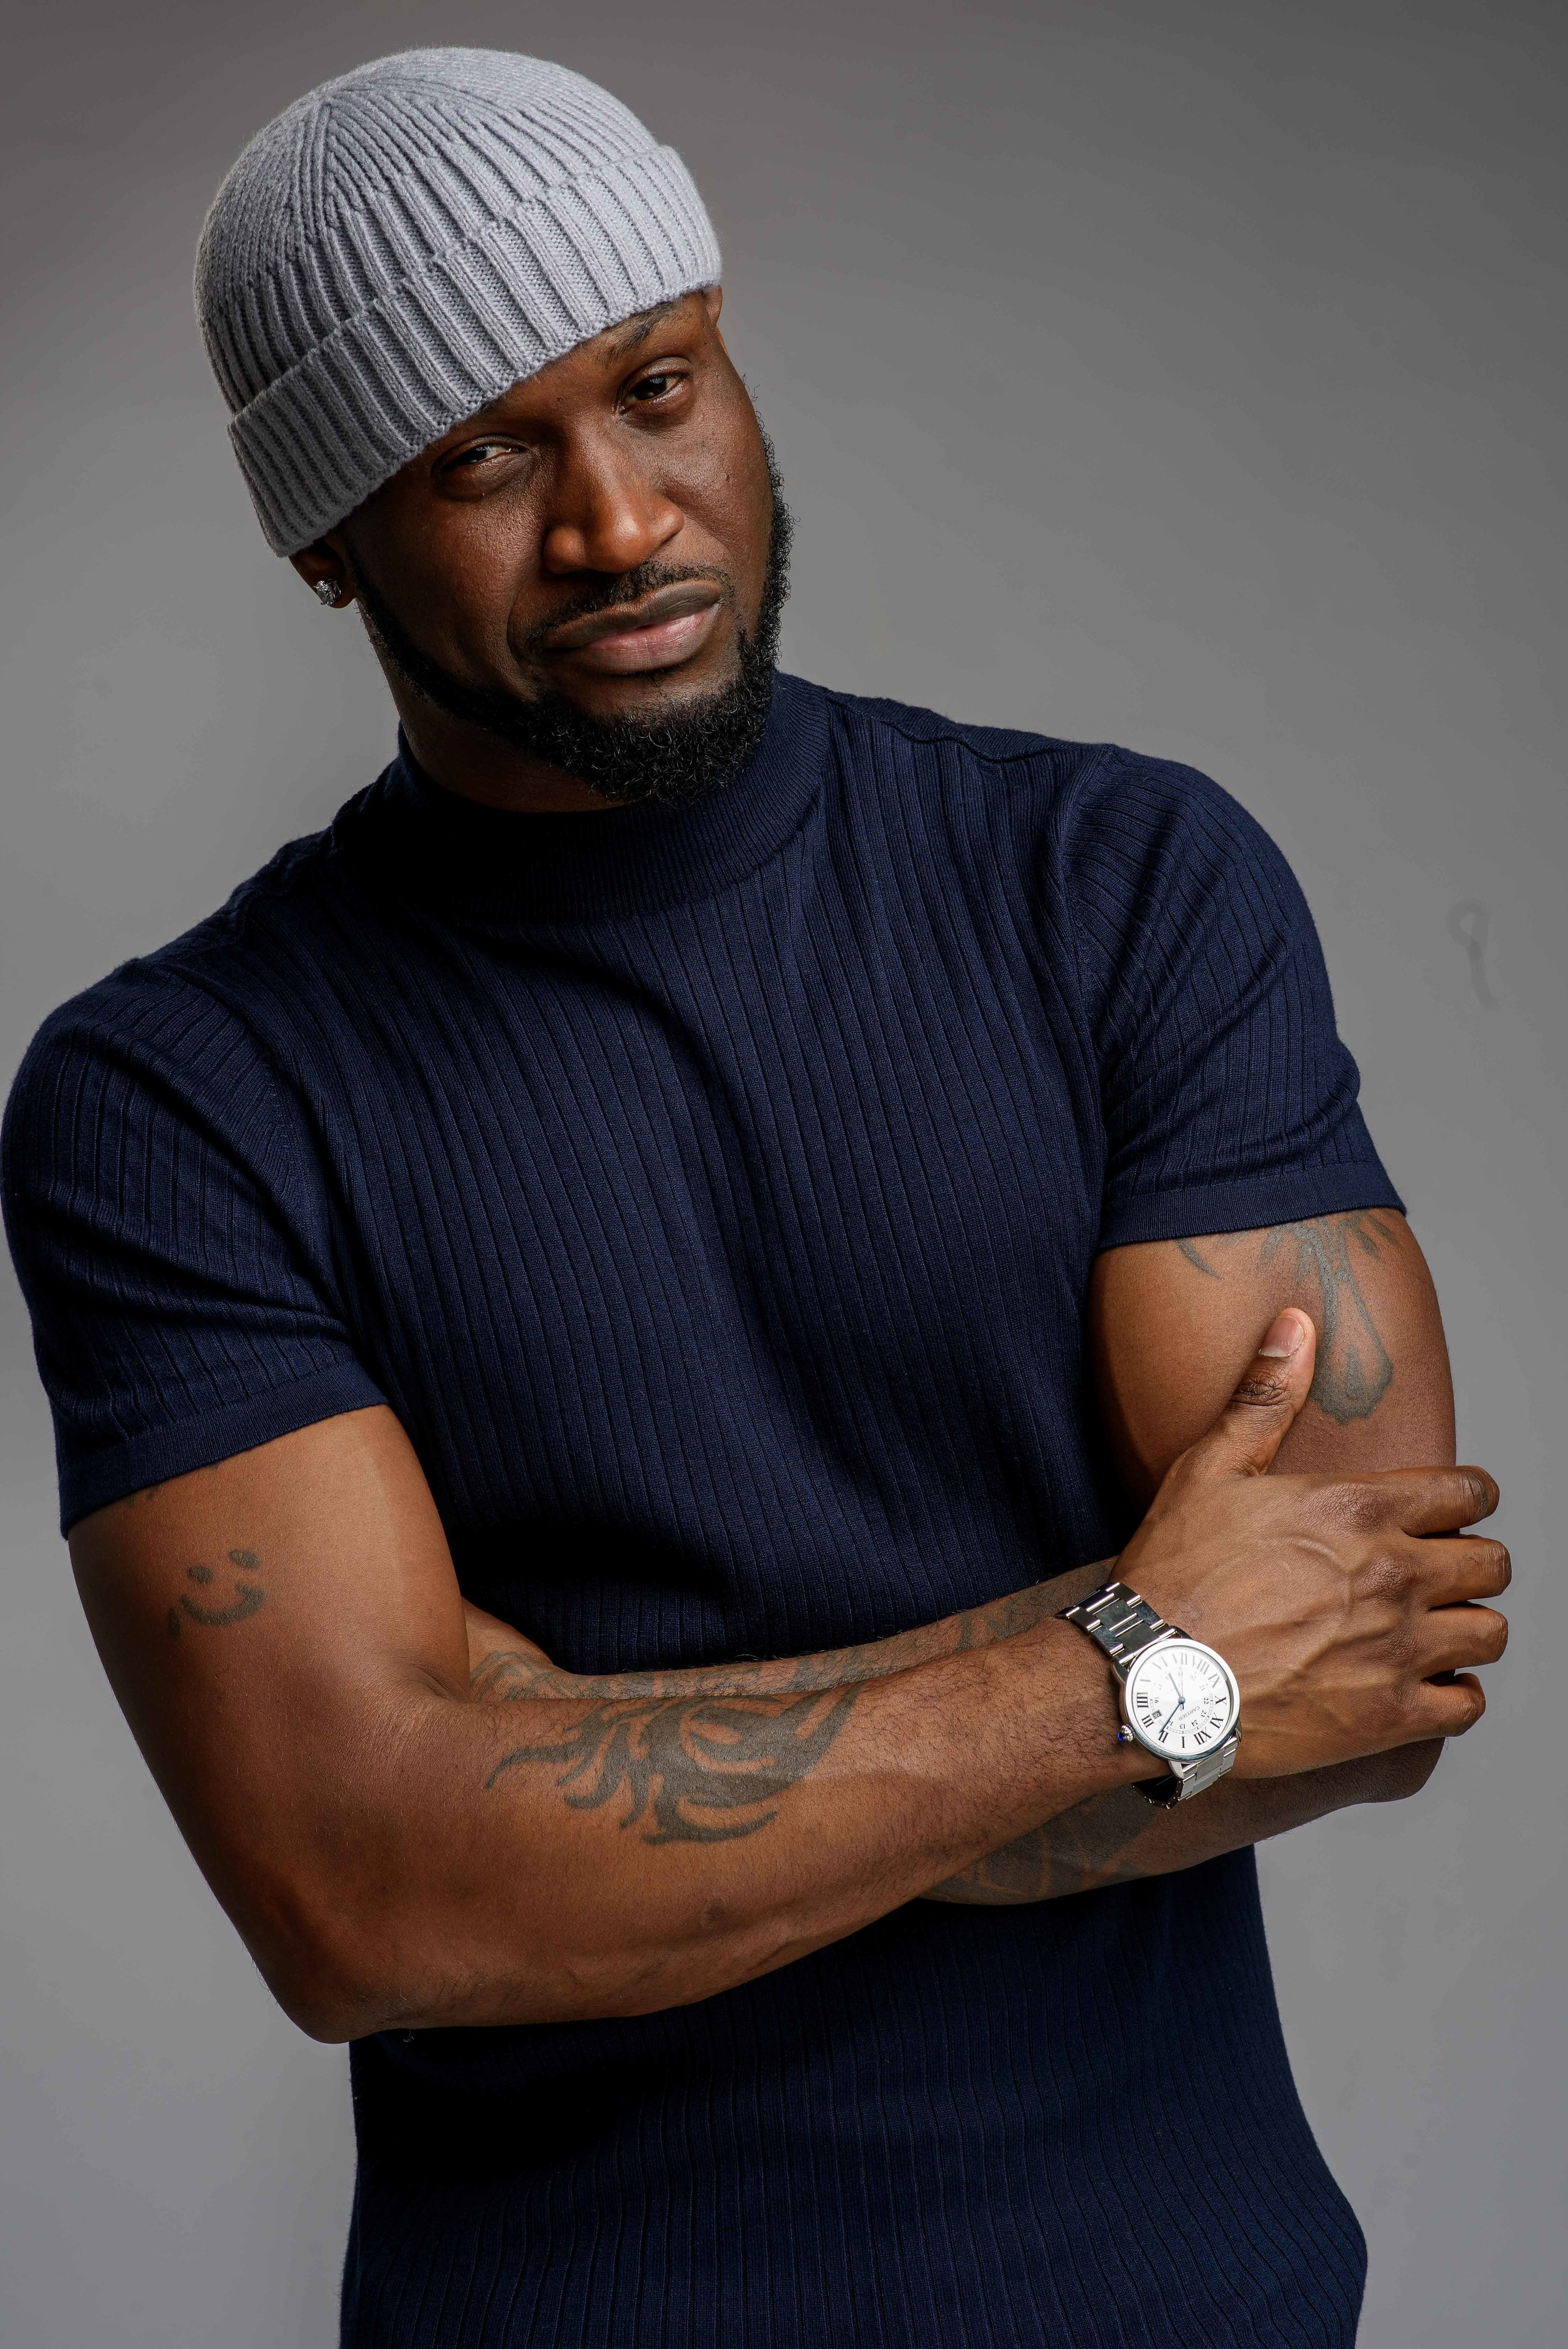 Image result for pictures of peter okoye